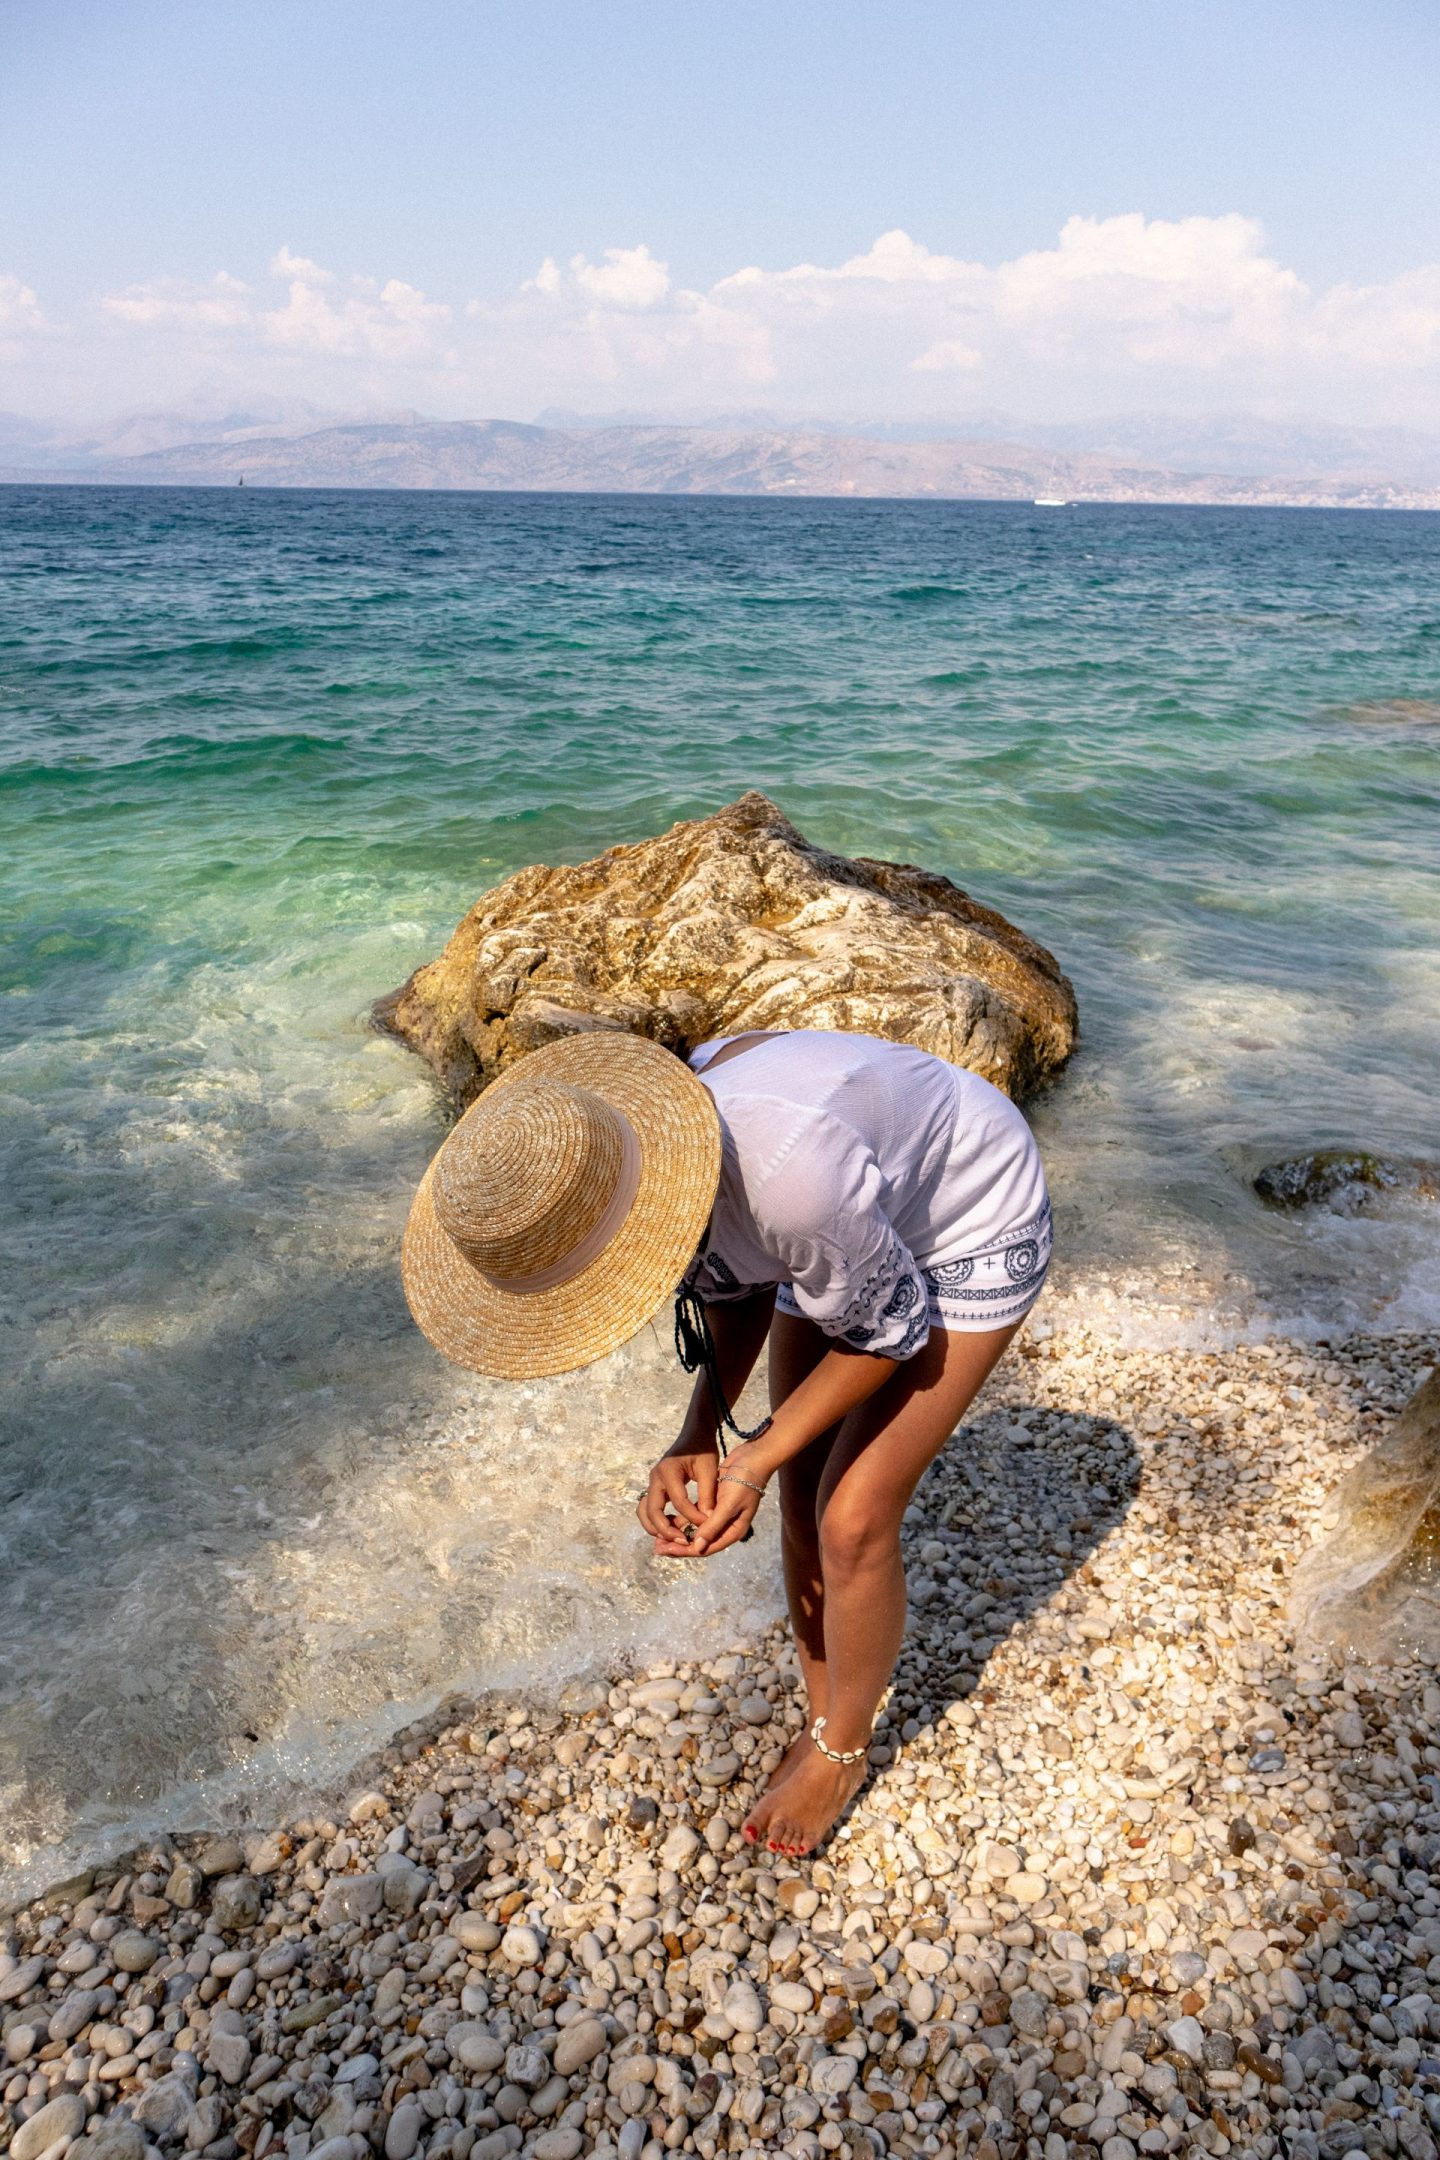 Collecting pebbles in Kassiopi